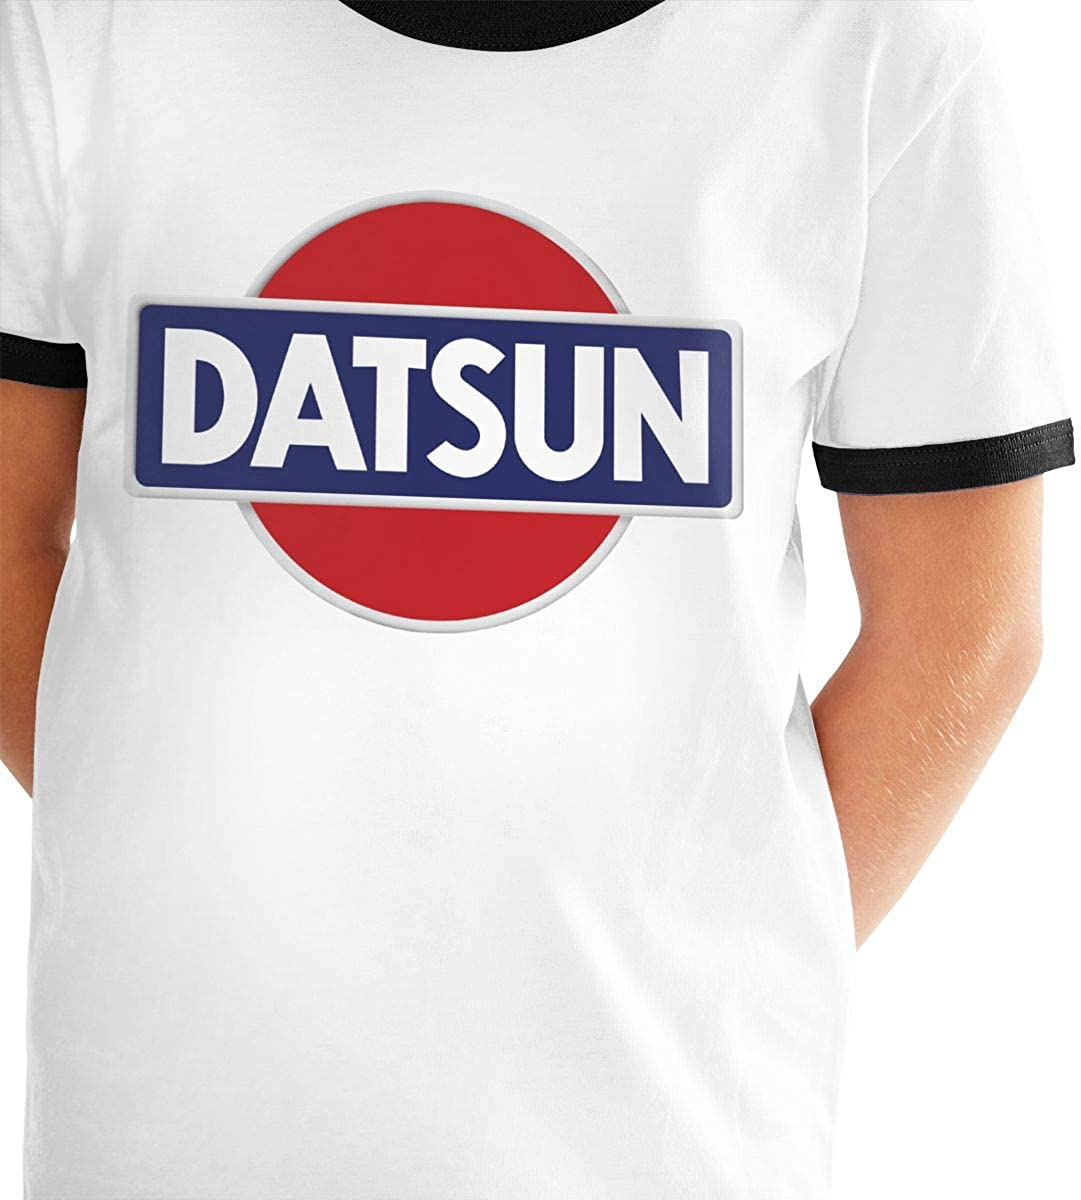 Manlee Datsun Emblem Car Logo Unisex Childrens Short Sleeve T-Shirt Kids Or Little Boys and Girls